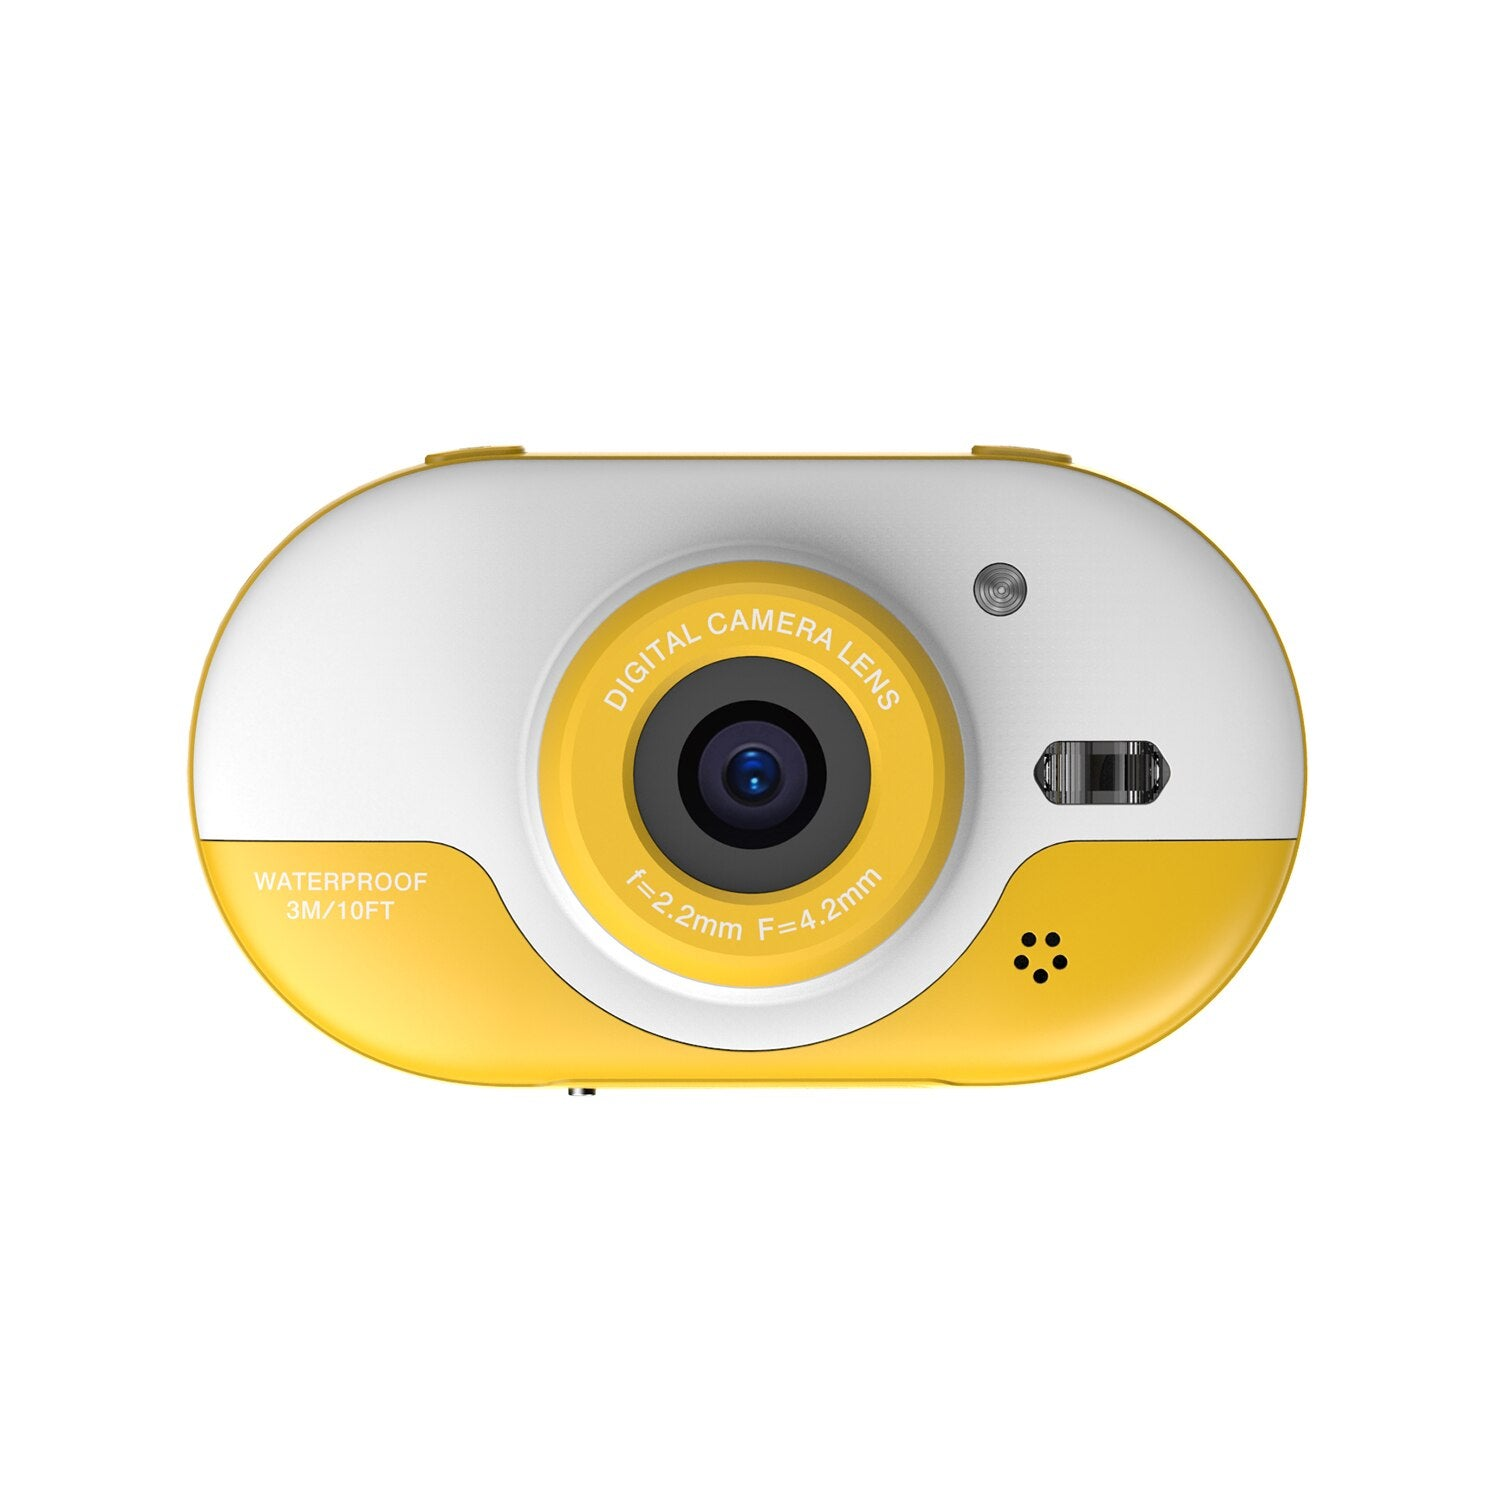 "Mini Camera 8MP Children Digital Camera Kids Waterproof Camera Dual Cameras 2.4"" IPS HD Screen Photo/Video Self-timer"